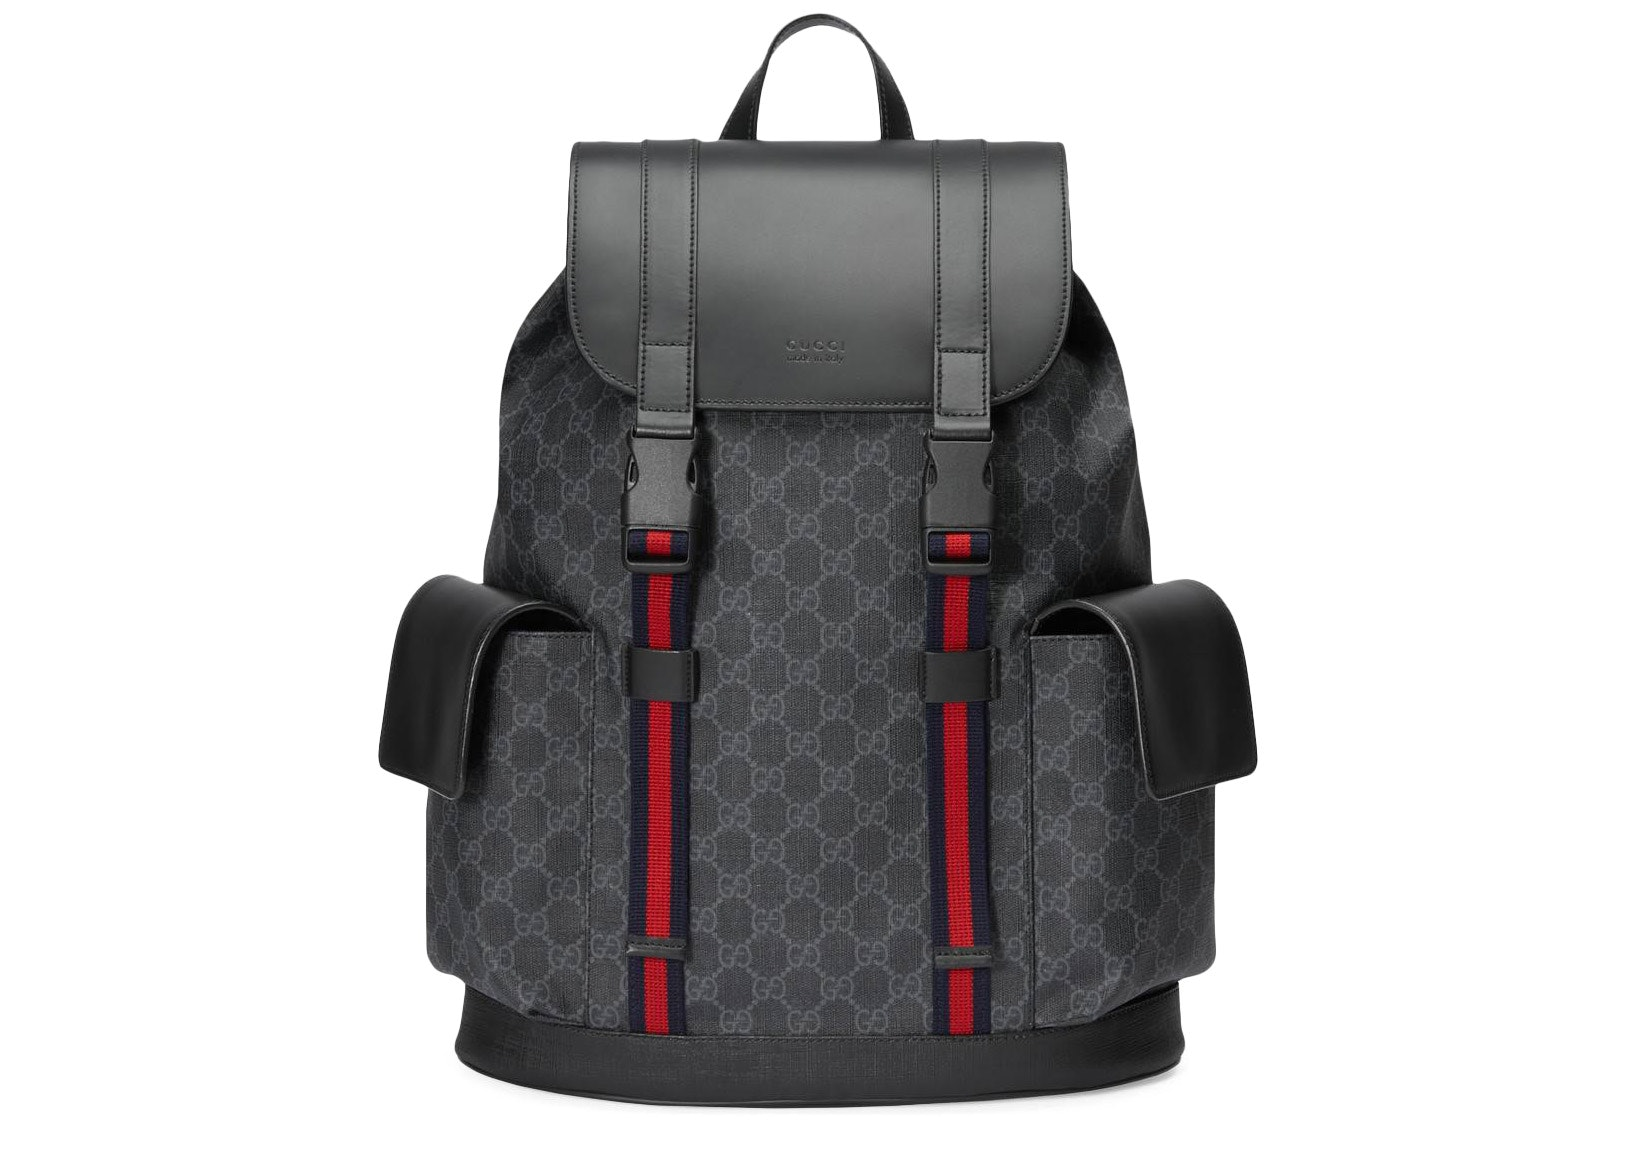 Gucci Soft Backpack GG Supreme Blue/Red Web Black/Grey